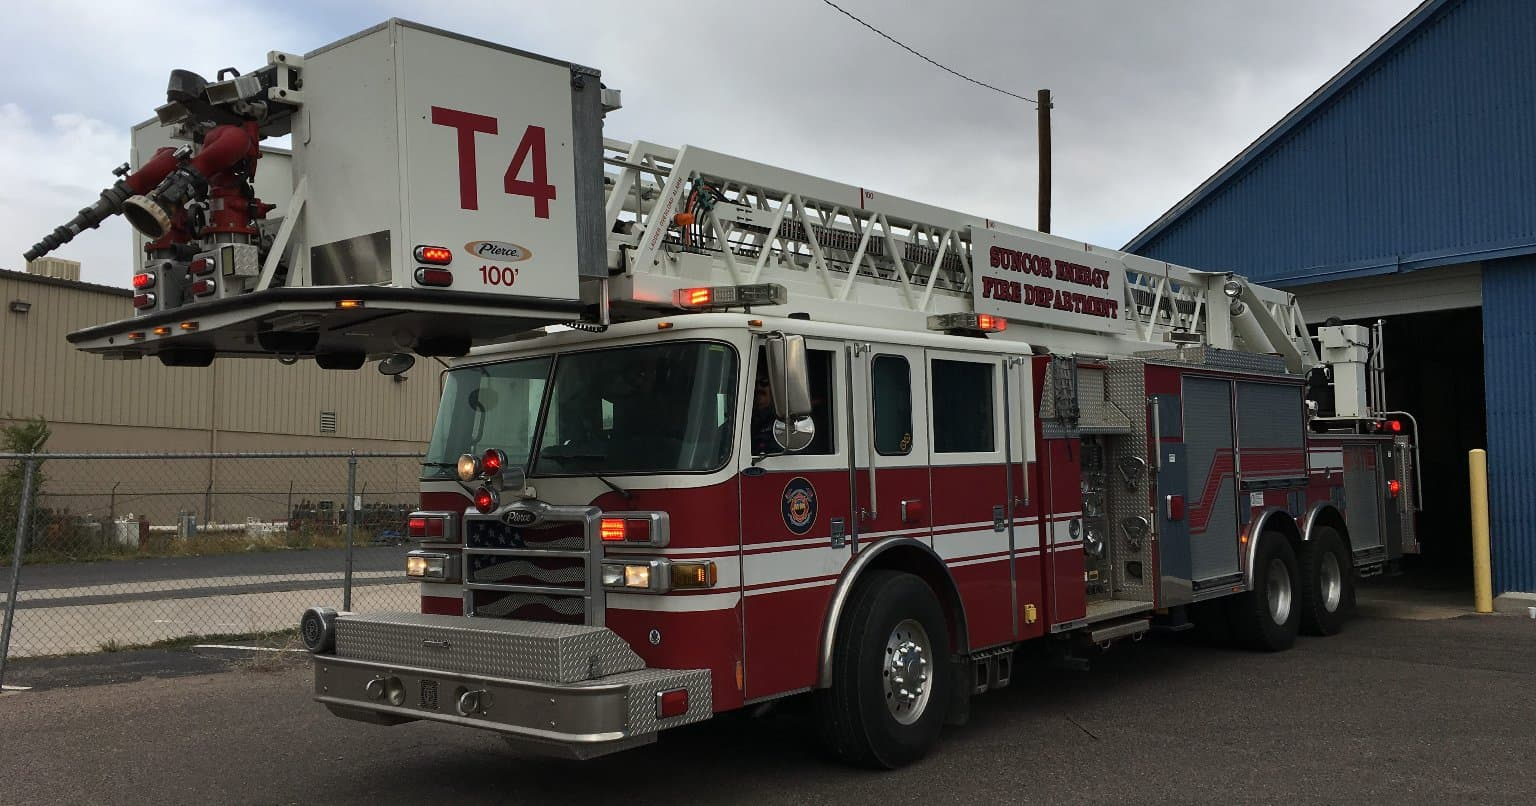 The recent addition of a 100-foot Pierce Platform fire truck will enhance the capabilities of our in-house fire and rescue teams.